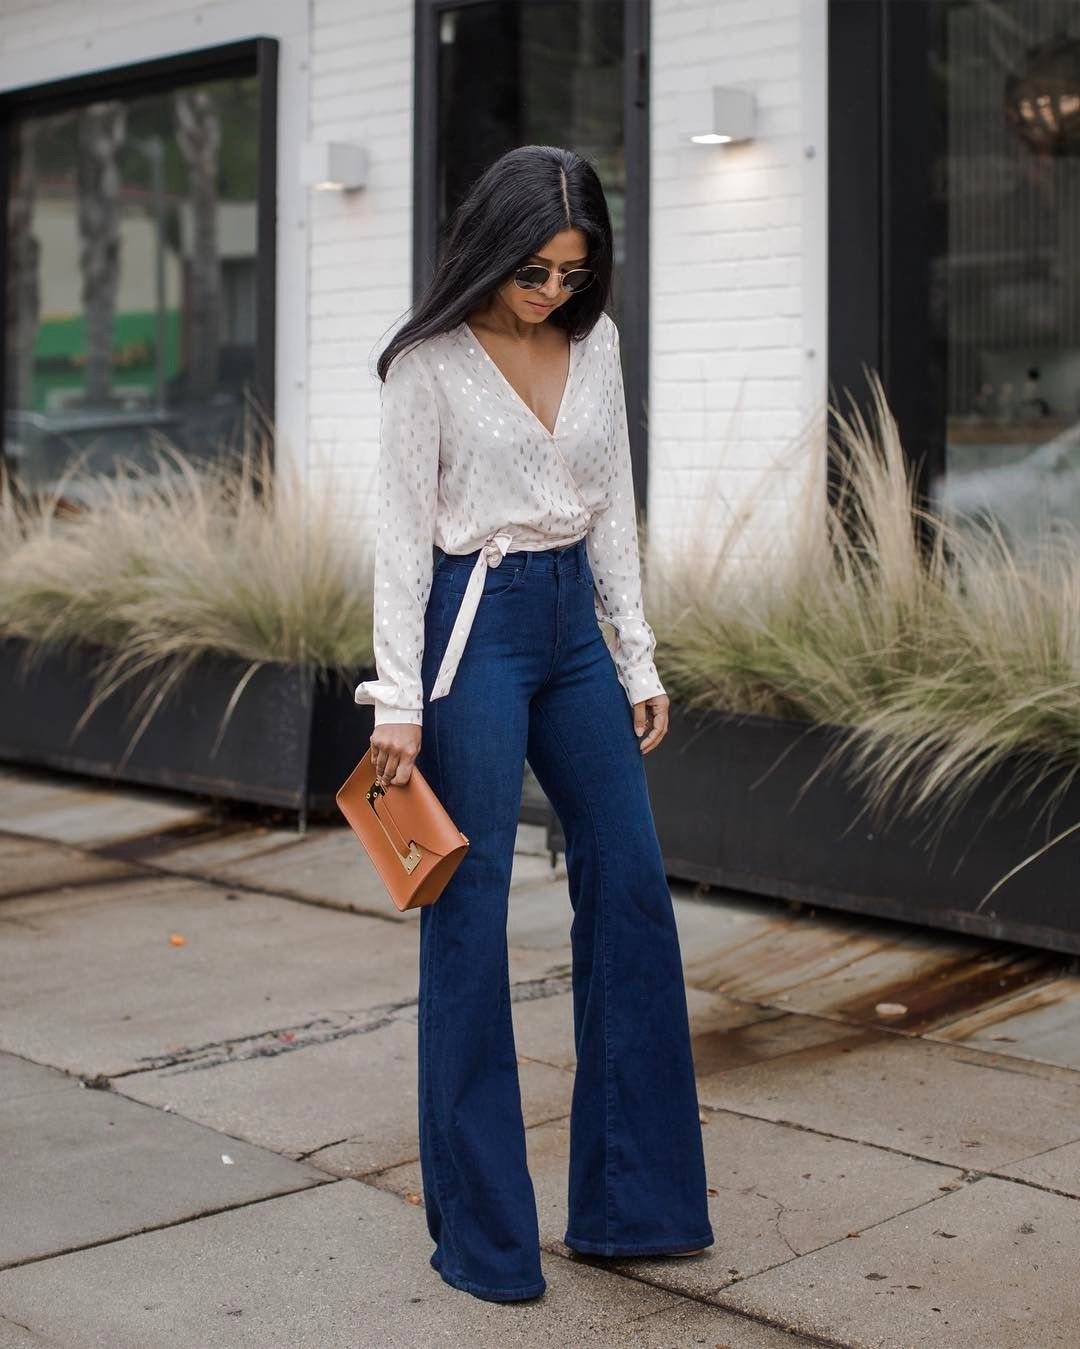 how to dress to look taller and slimmer